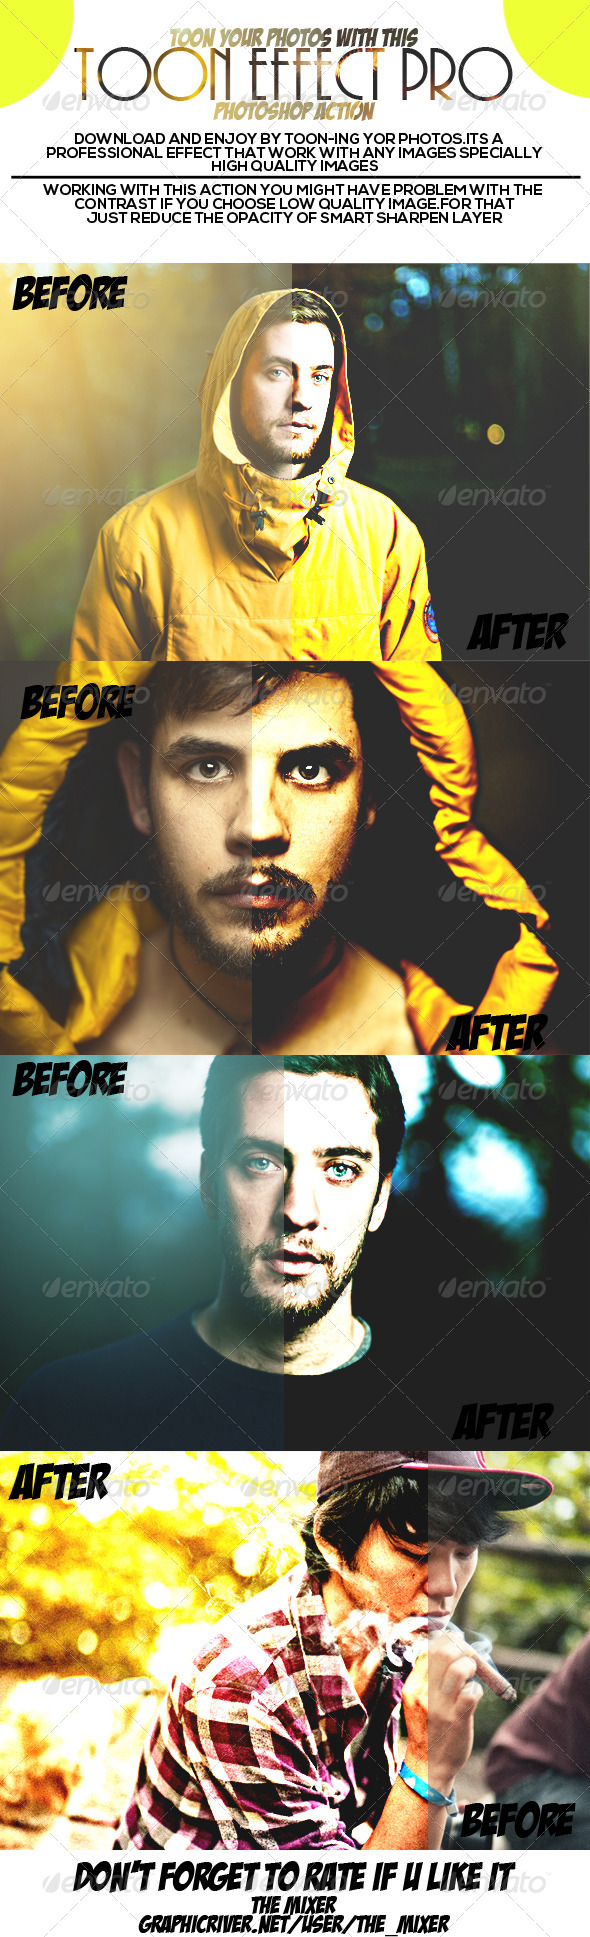 GraphicRiver Toon Effect Pro Photoshop Action 7252257